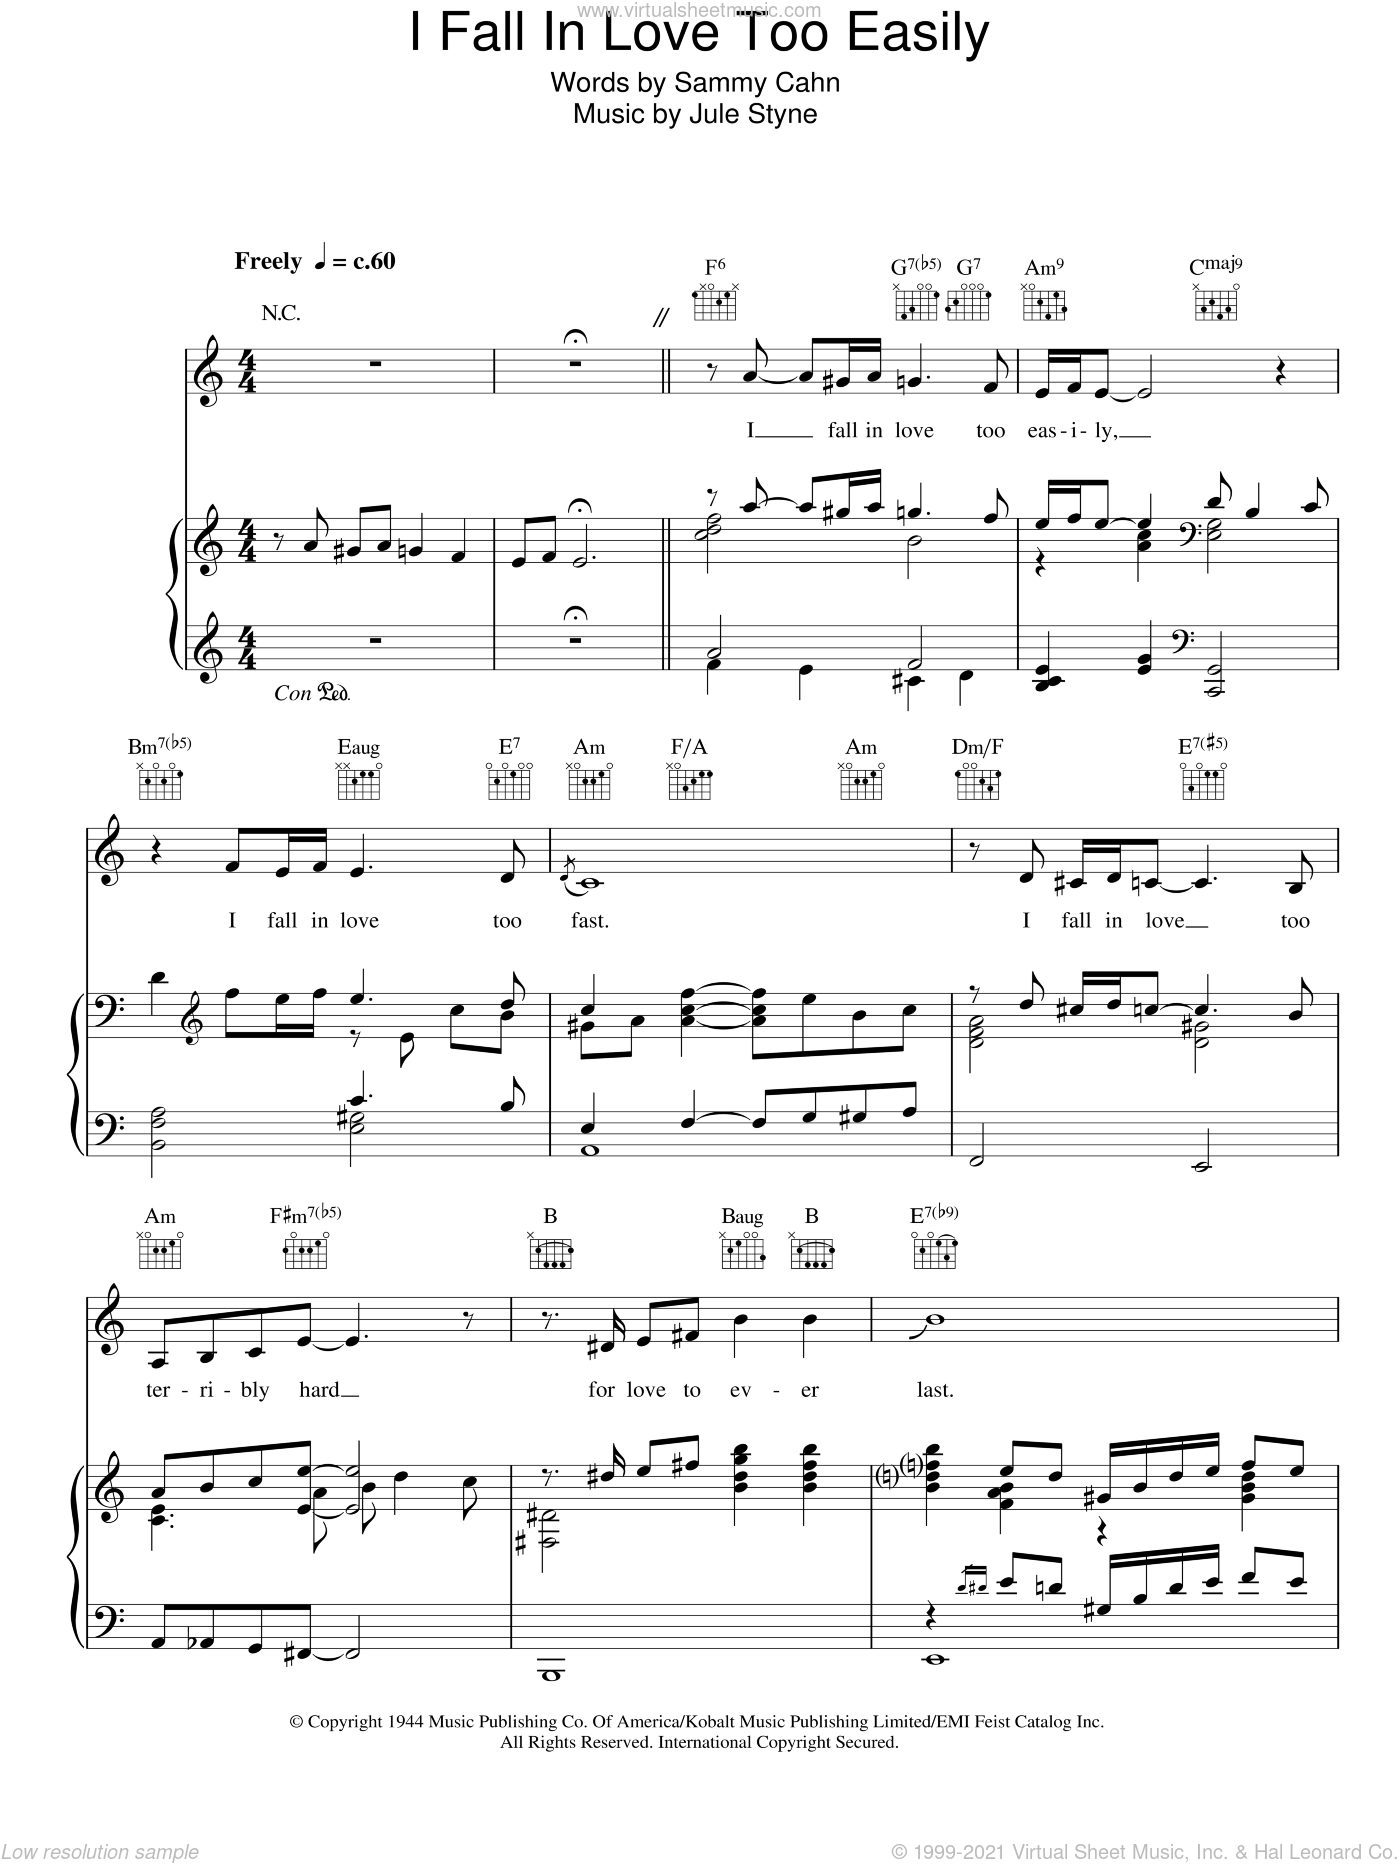 I Fall In Love Too Easily sheet music for voice, piano or guitar by Frank Sinatra, Jule Styne and Sammy Cahn, intermediate skill level